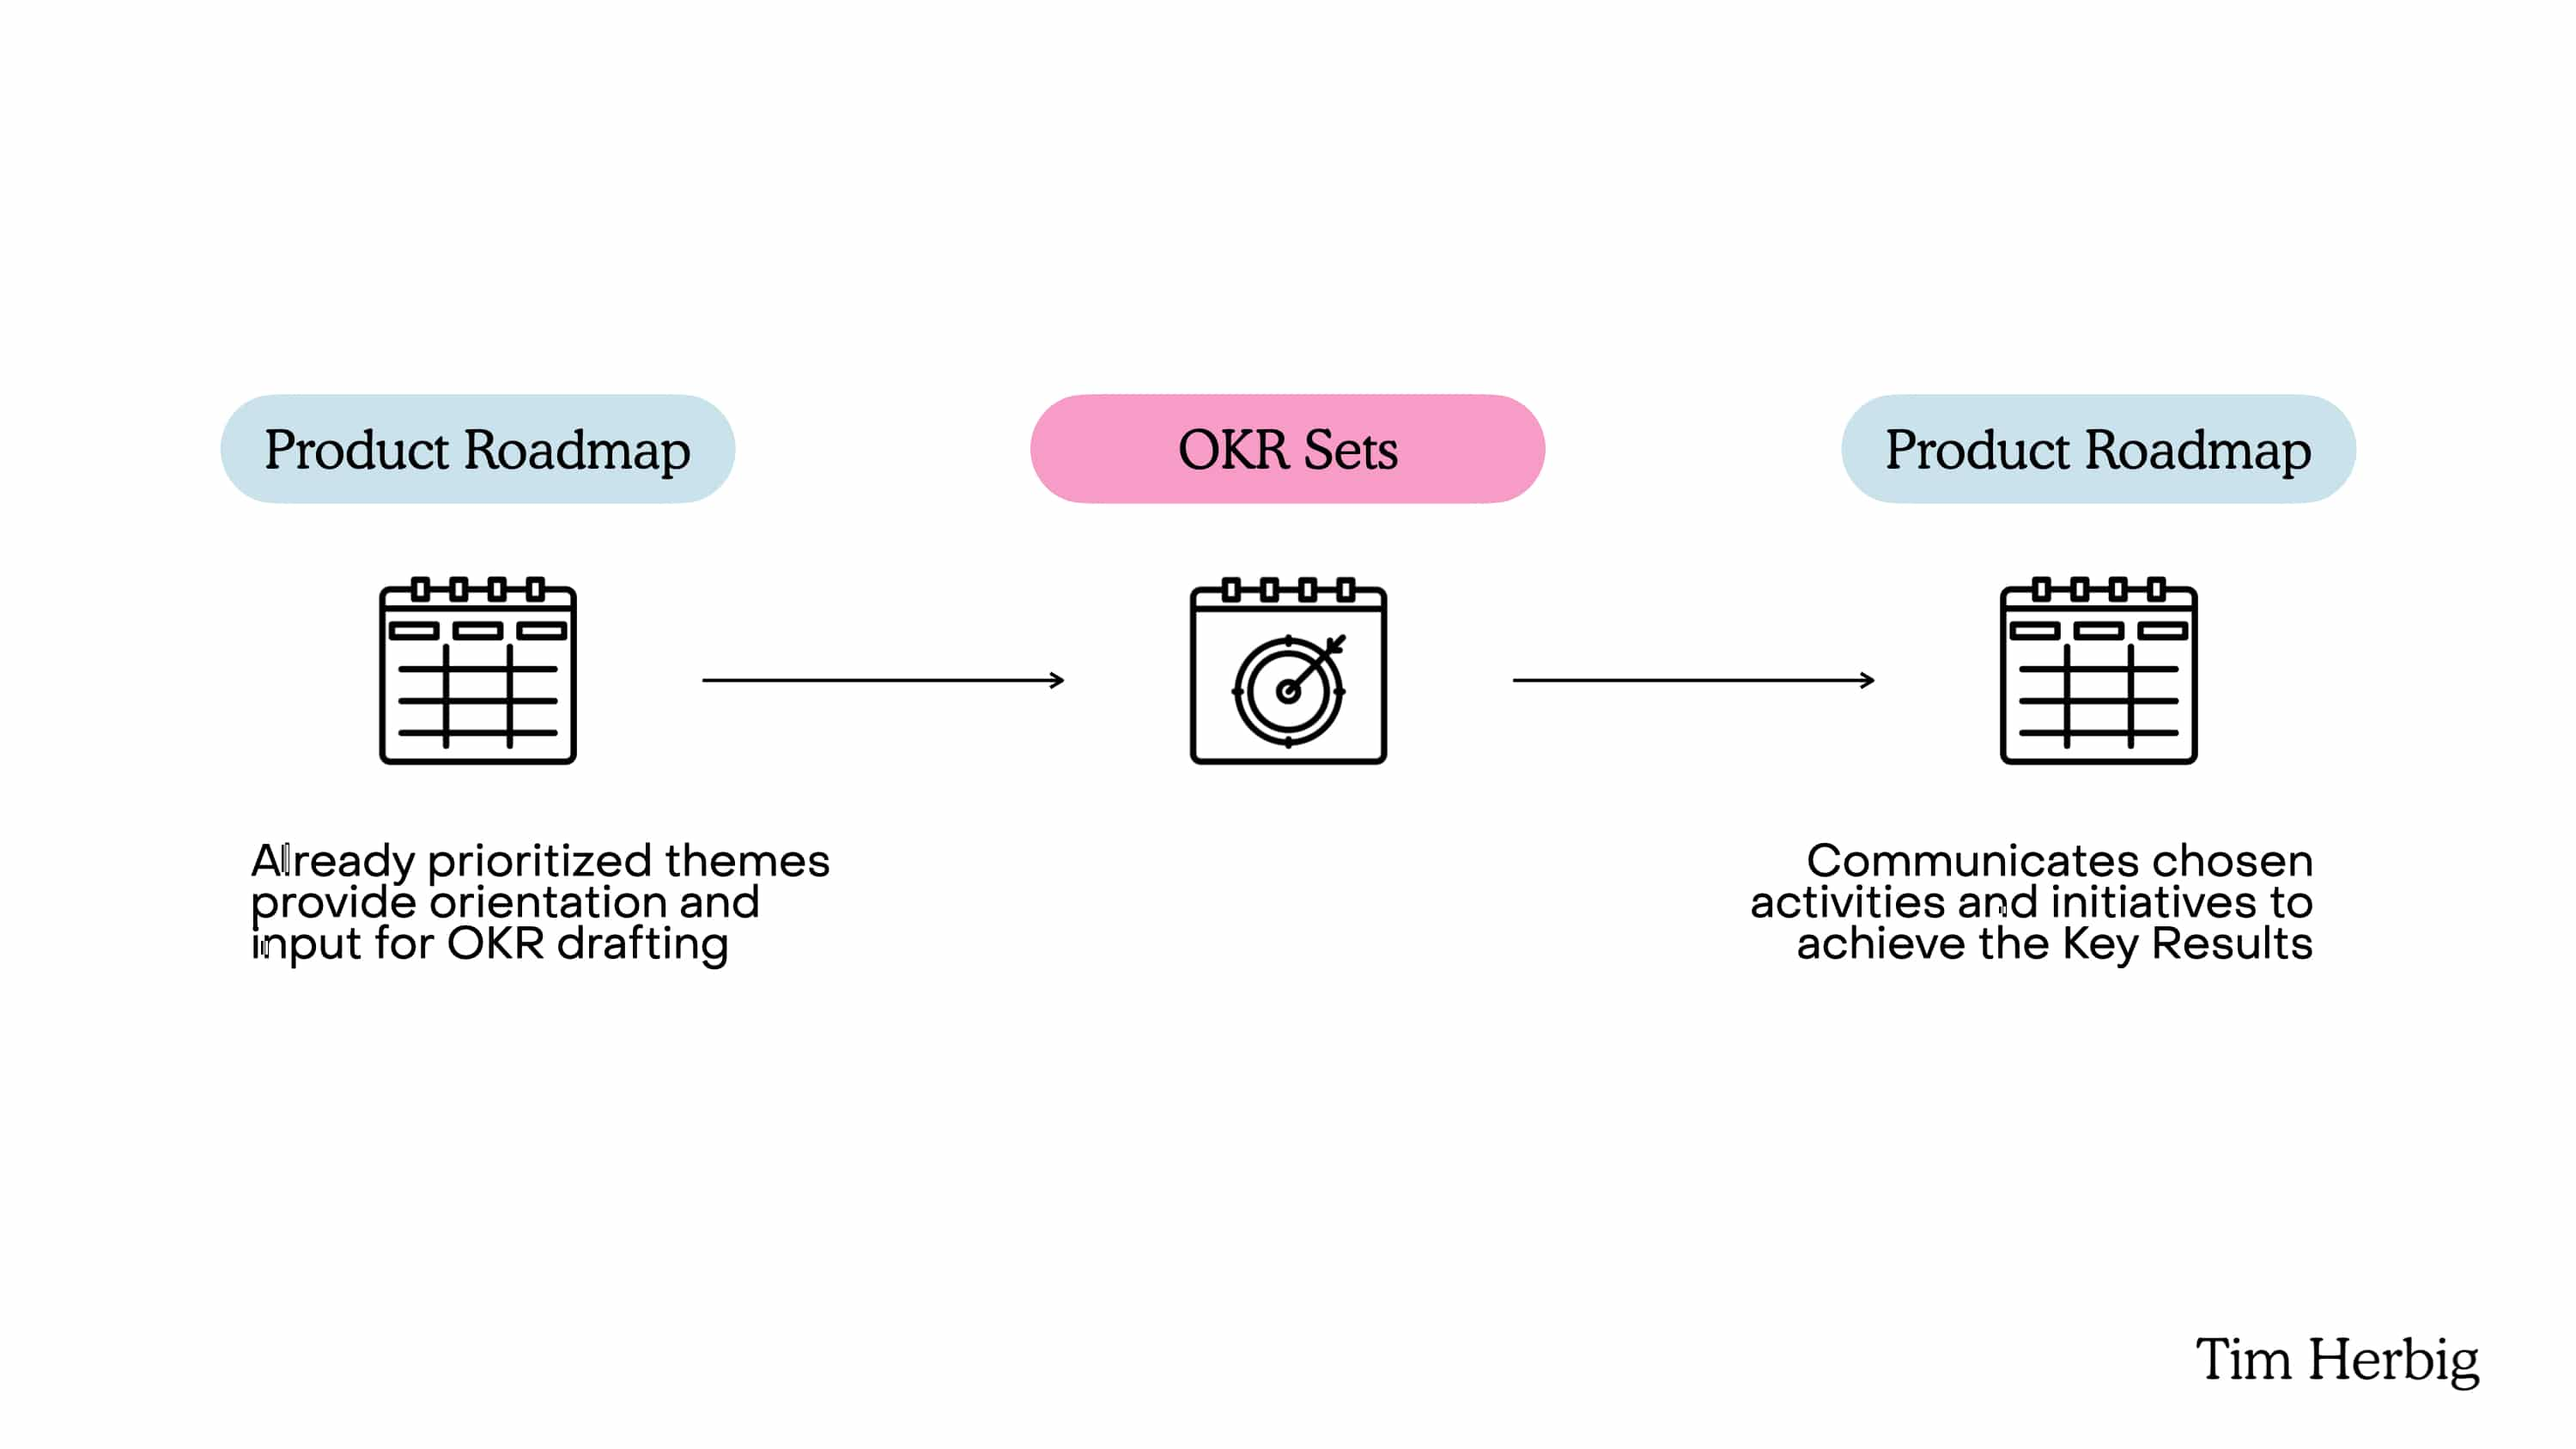 Product Roadmap and OKR Set Relationship